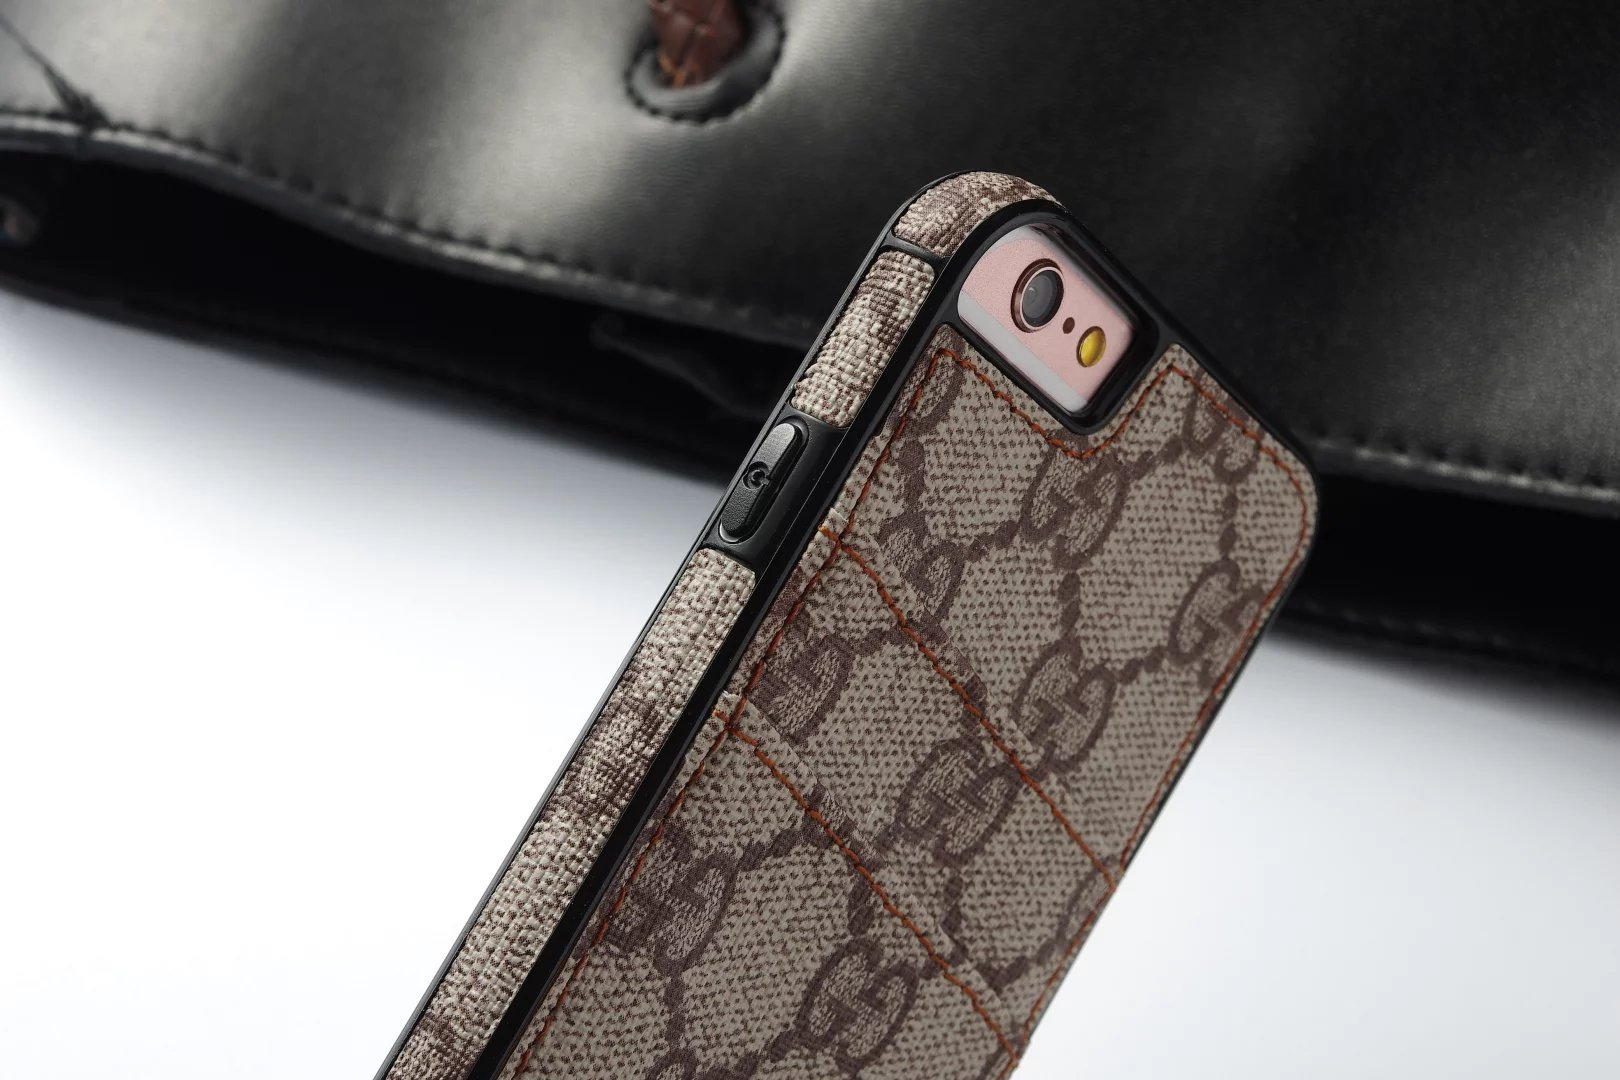 handyhülle foto iphone iphone hülle kaufen Louis Vuitton iphone6 plus hülle iphone 6 Plus over holz beste hülle iphone 6 Plus handyhüllen für htc one mini iphone 6 Plus hülle marken ipod ca6 6lbst gestalten hülle iphone 6 Plus apple